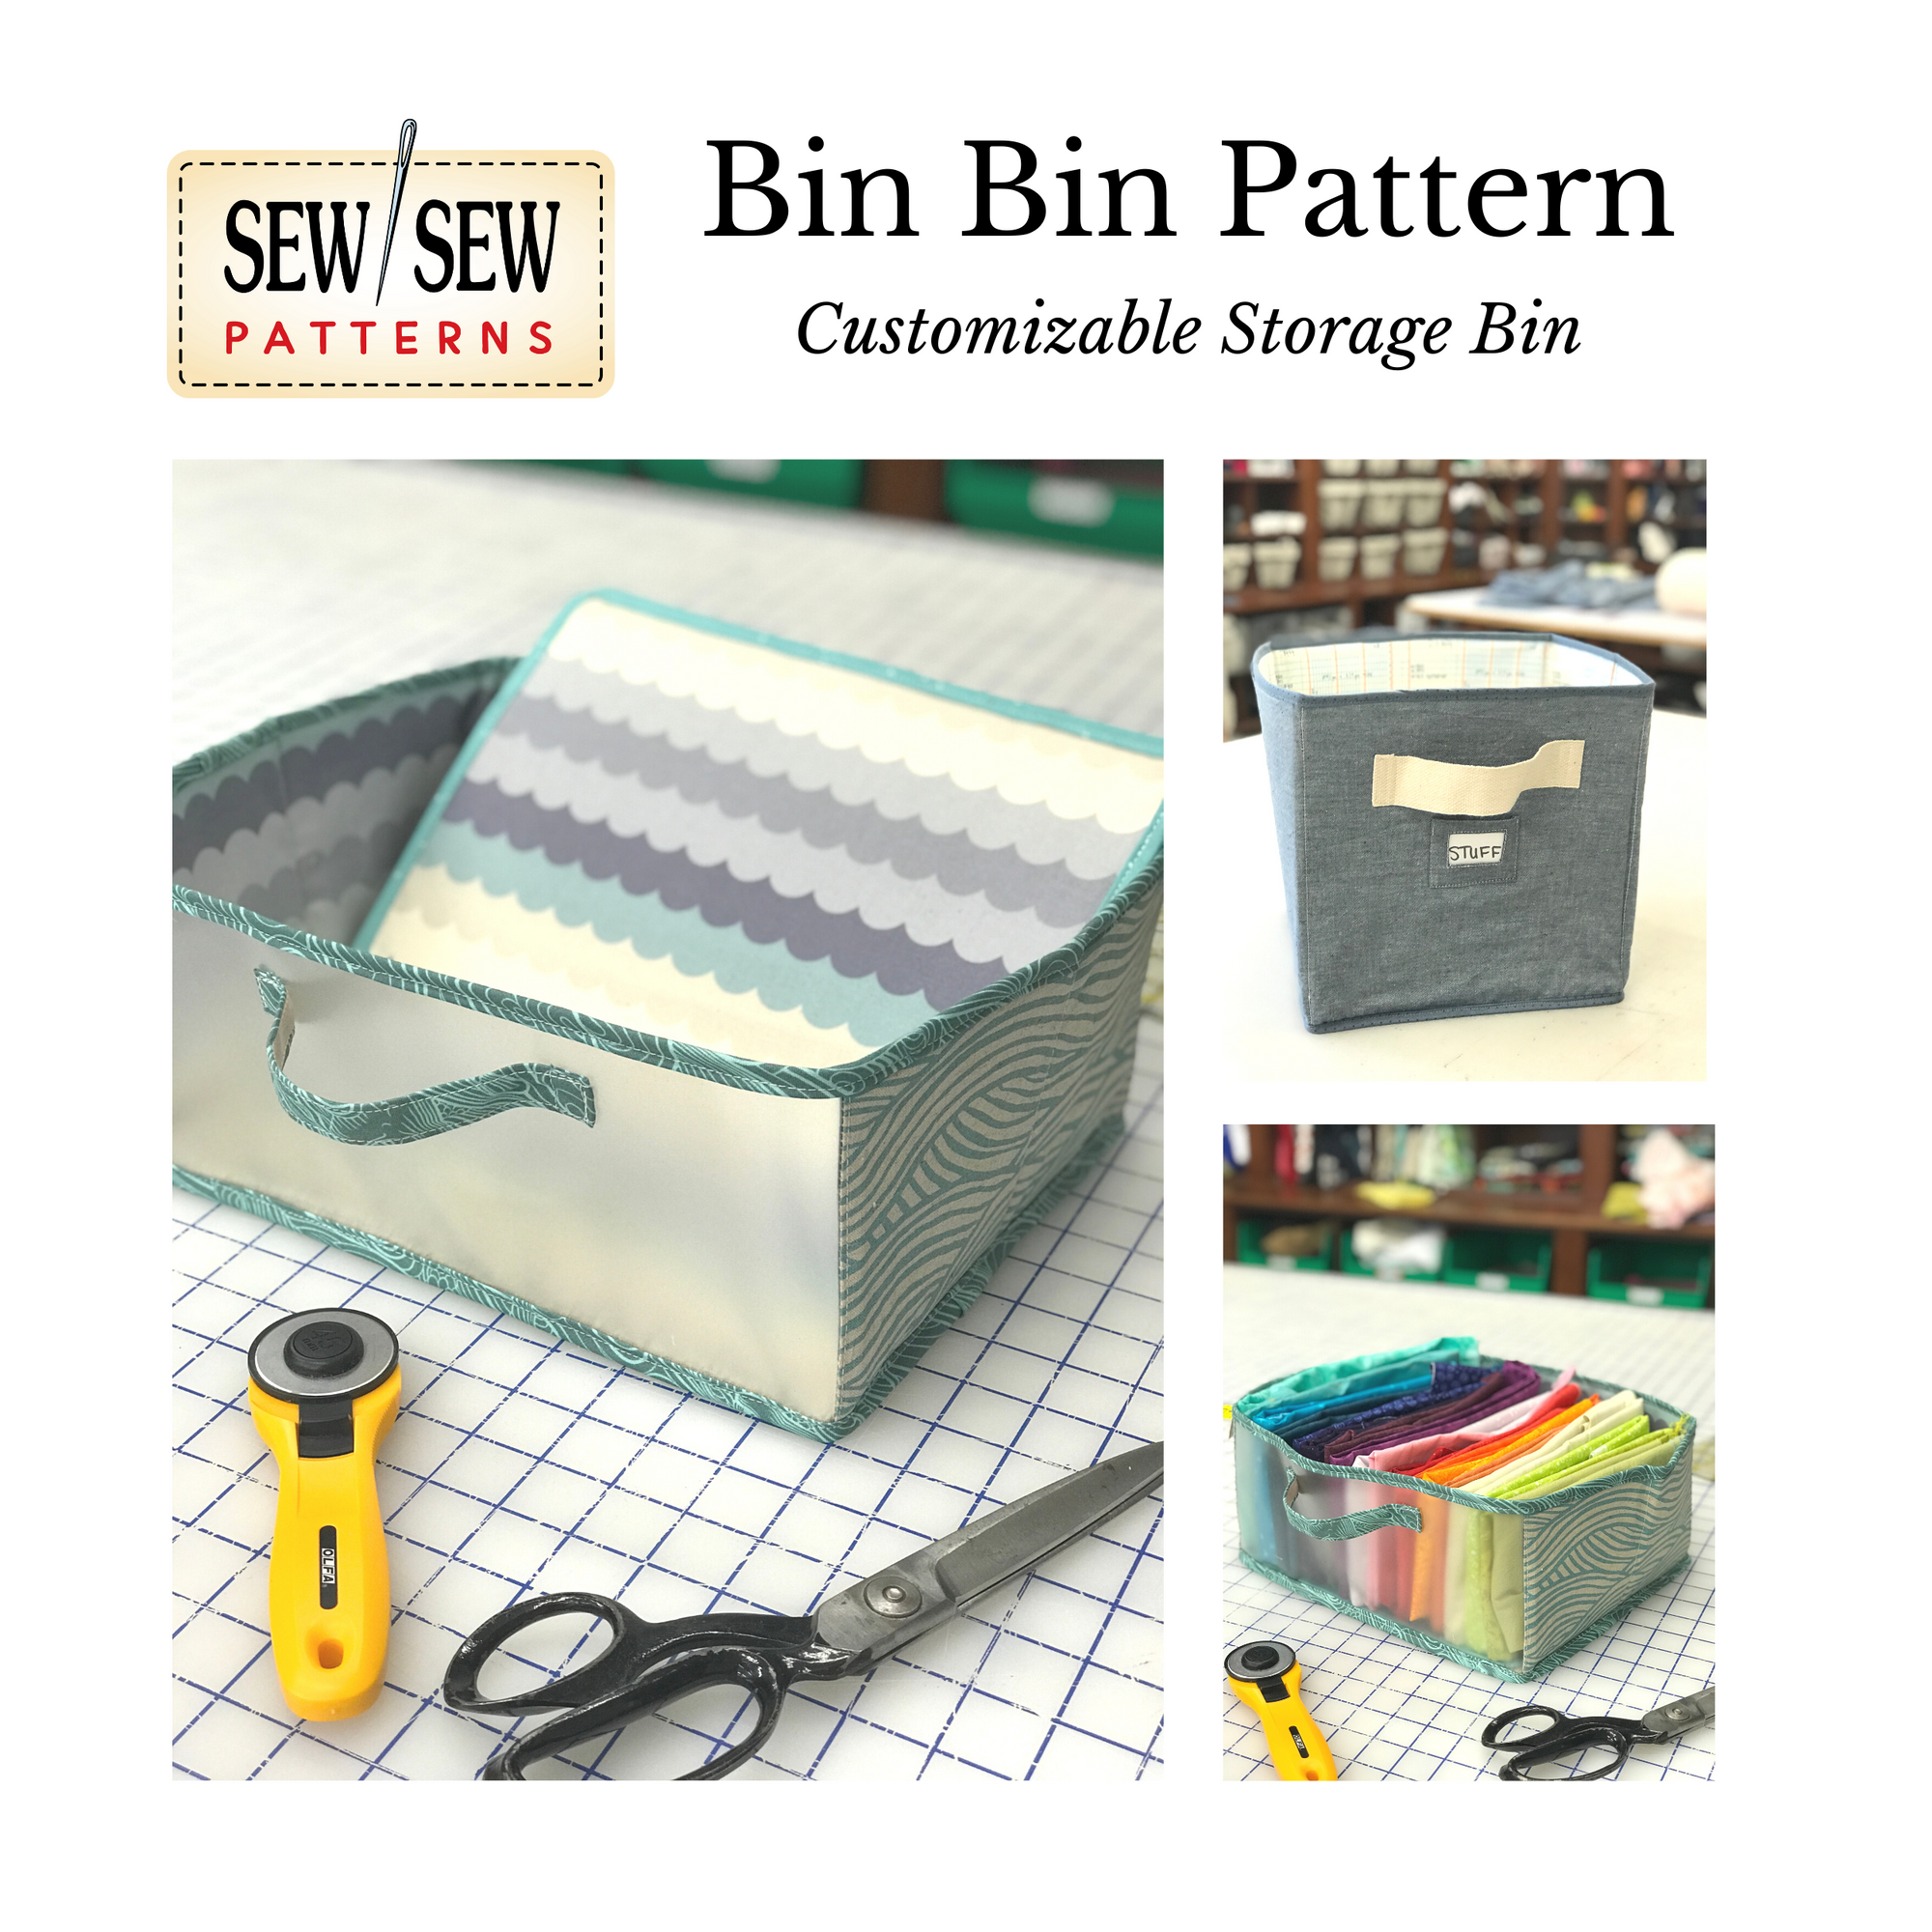 Bin Bin by Sew Sew Patterns